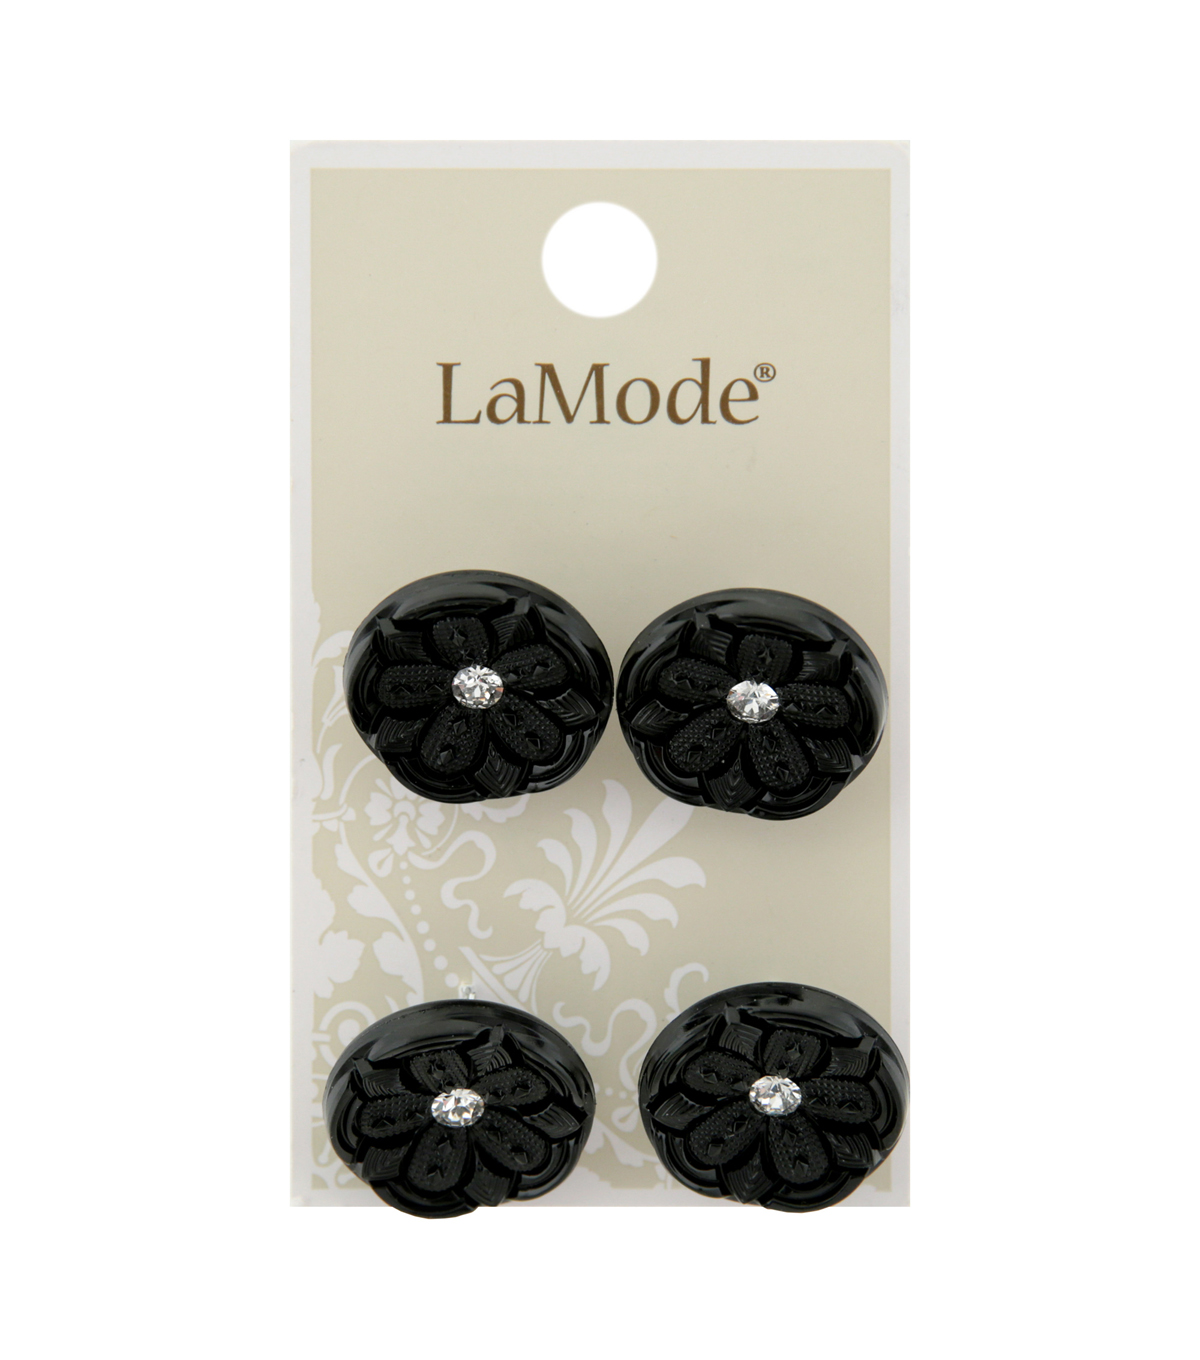 La Mode 4 pk 20 mm Black Shank Buttons with Centre Rhinestone